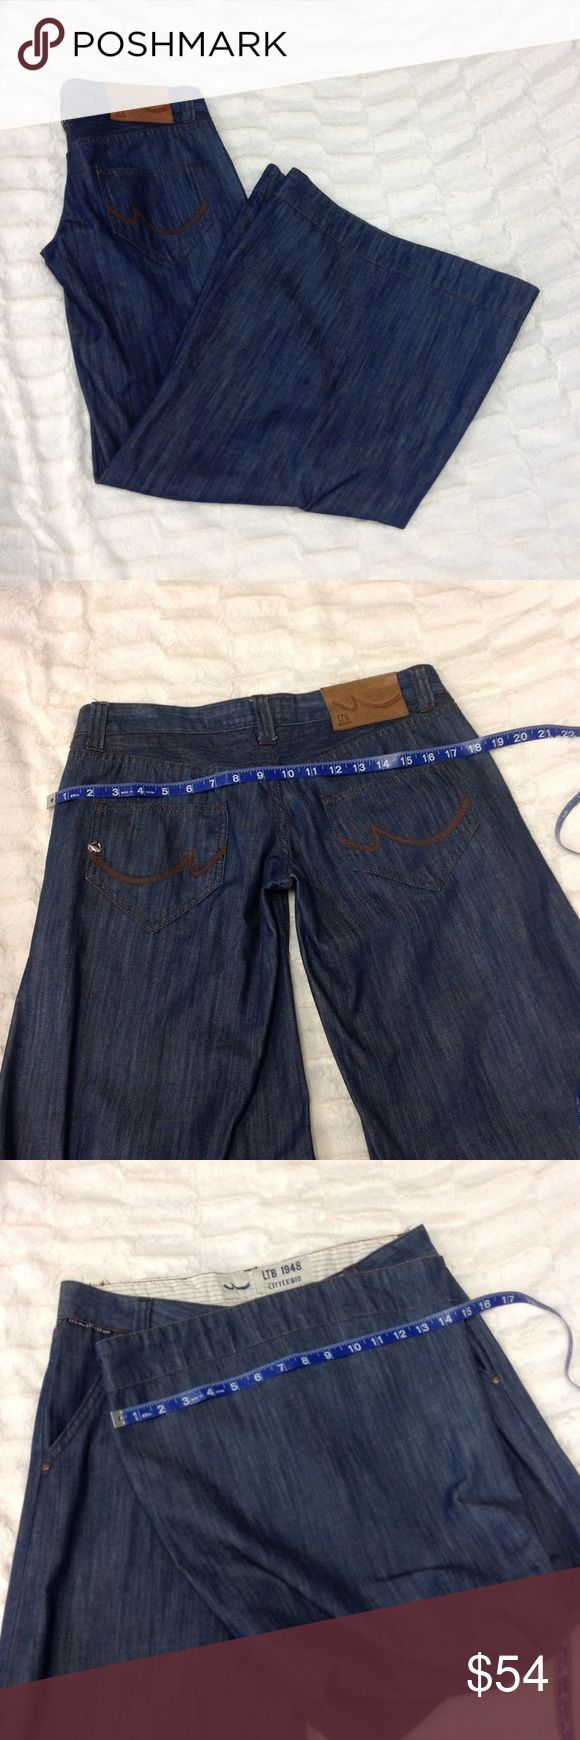 "LITTLEBIG (LTB) Super Flare Jeans 😍😍😍😍🚨❗️STOP!!! THESE ARE TOO MUCH TO HANDLE! These designer jeans are blue denim and SUPER FLARE!!! The inseam is 32"" and low rise style. The flare is 15.5"" wide when laying flat! The pockets have dark brown stitching and a tiny silver crab accent! ☺️ ***MINT CONDITION! Super unique! Littlebig Jeans Flare & Wide Leg"